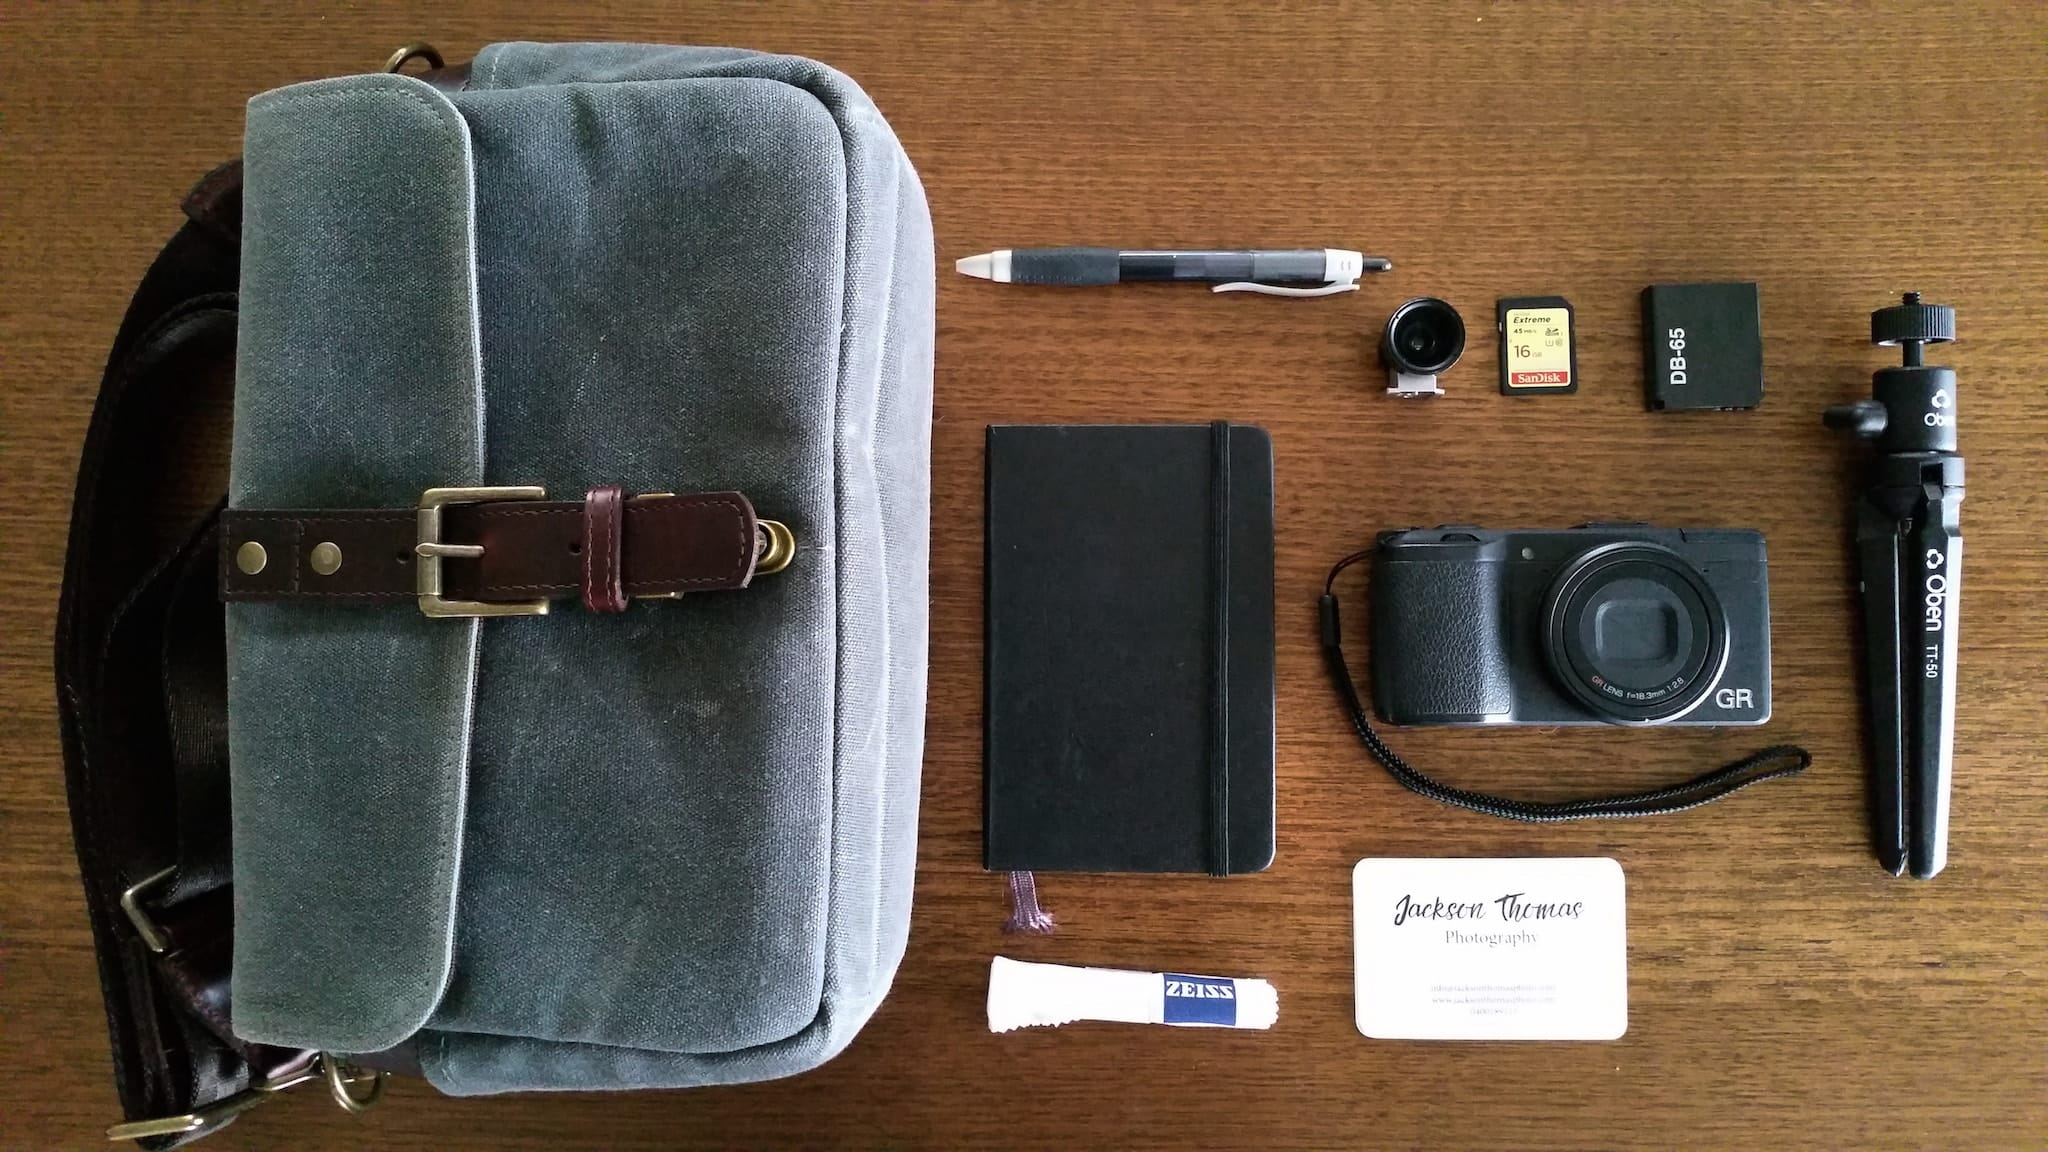 Inside Jackson Thomas' camera bag